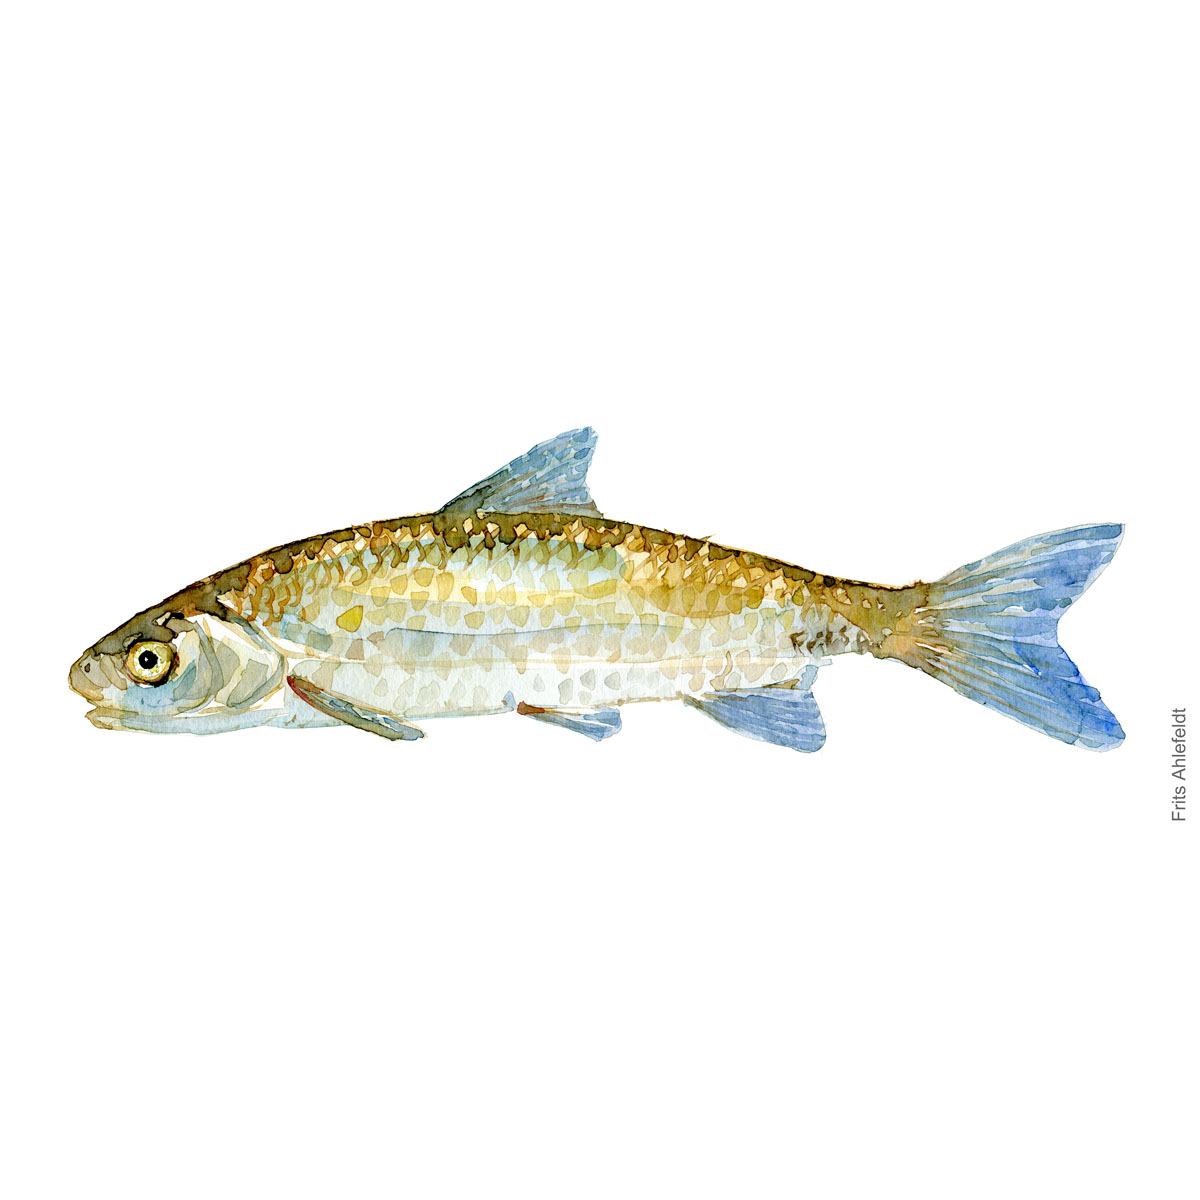 Dace - hasel Fish watercolor illustration by frits Ahlefeldt